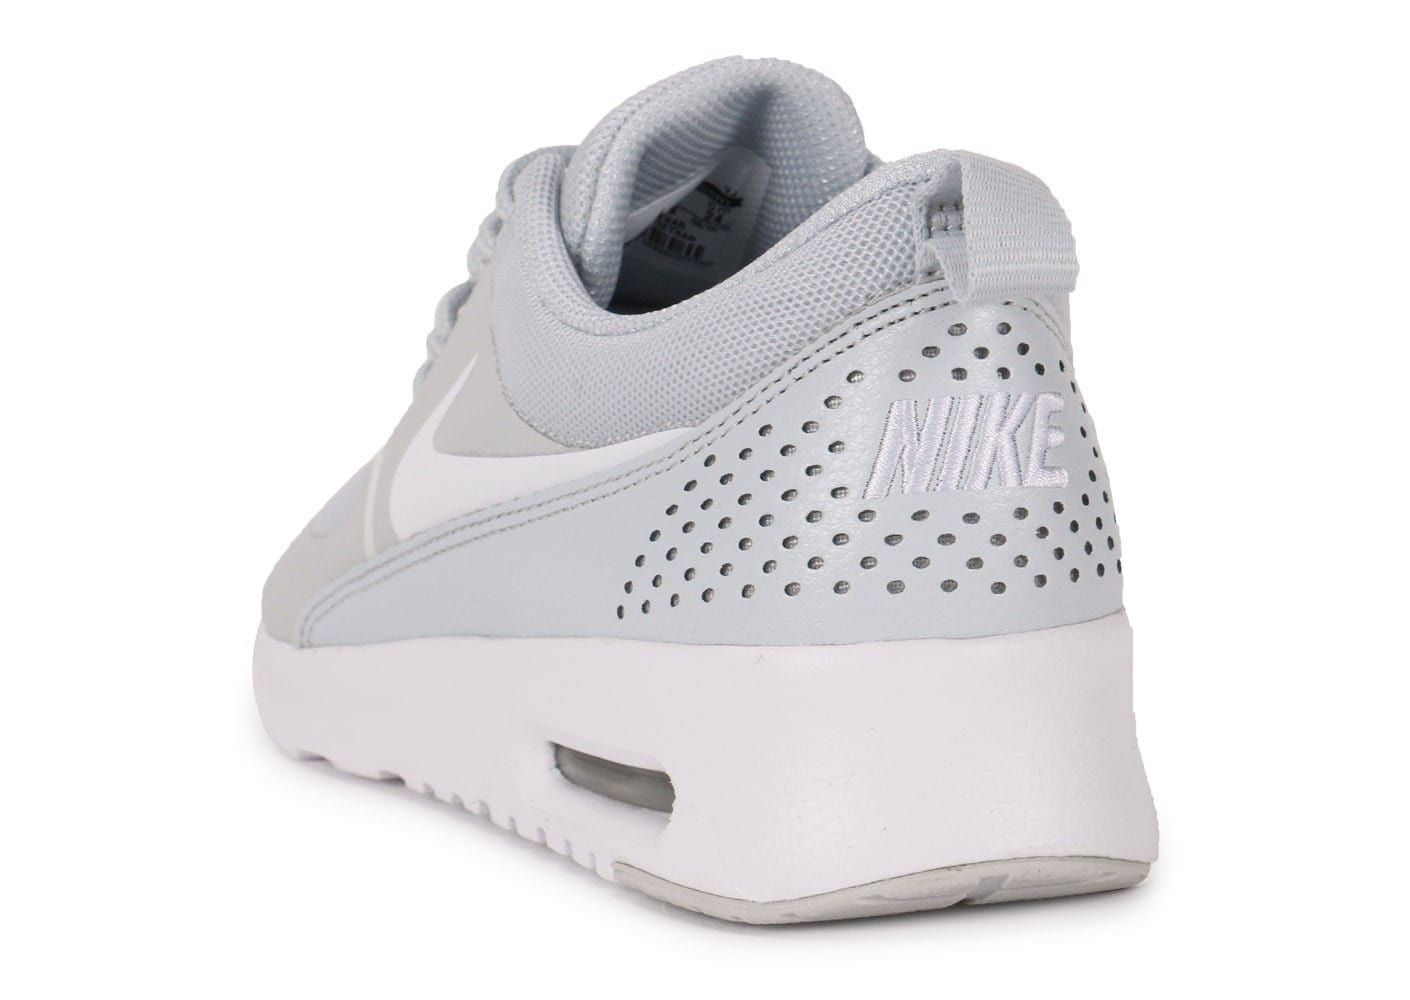 on sale f1b5c d9adc chaussures nike air max thea grise vue arriere